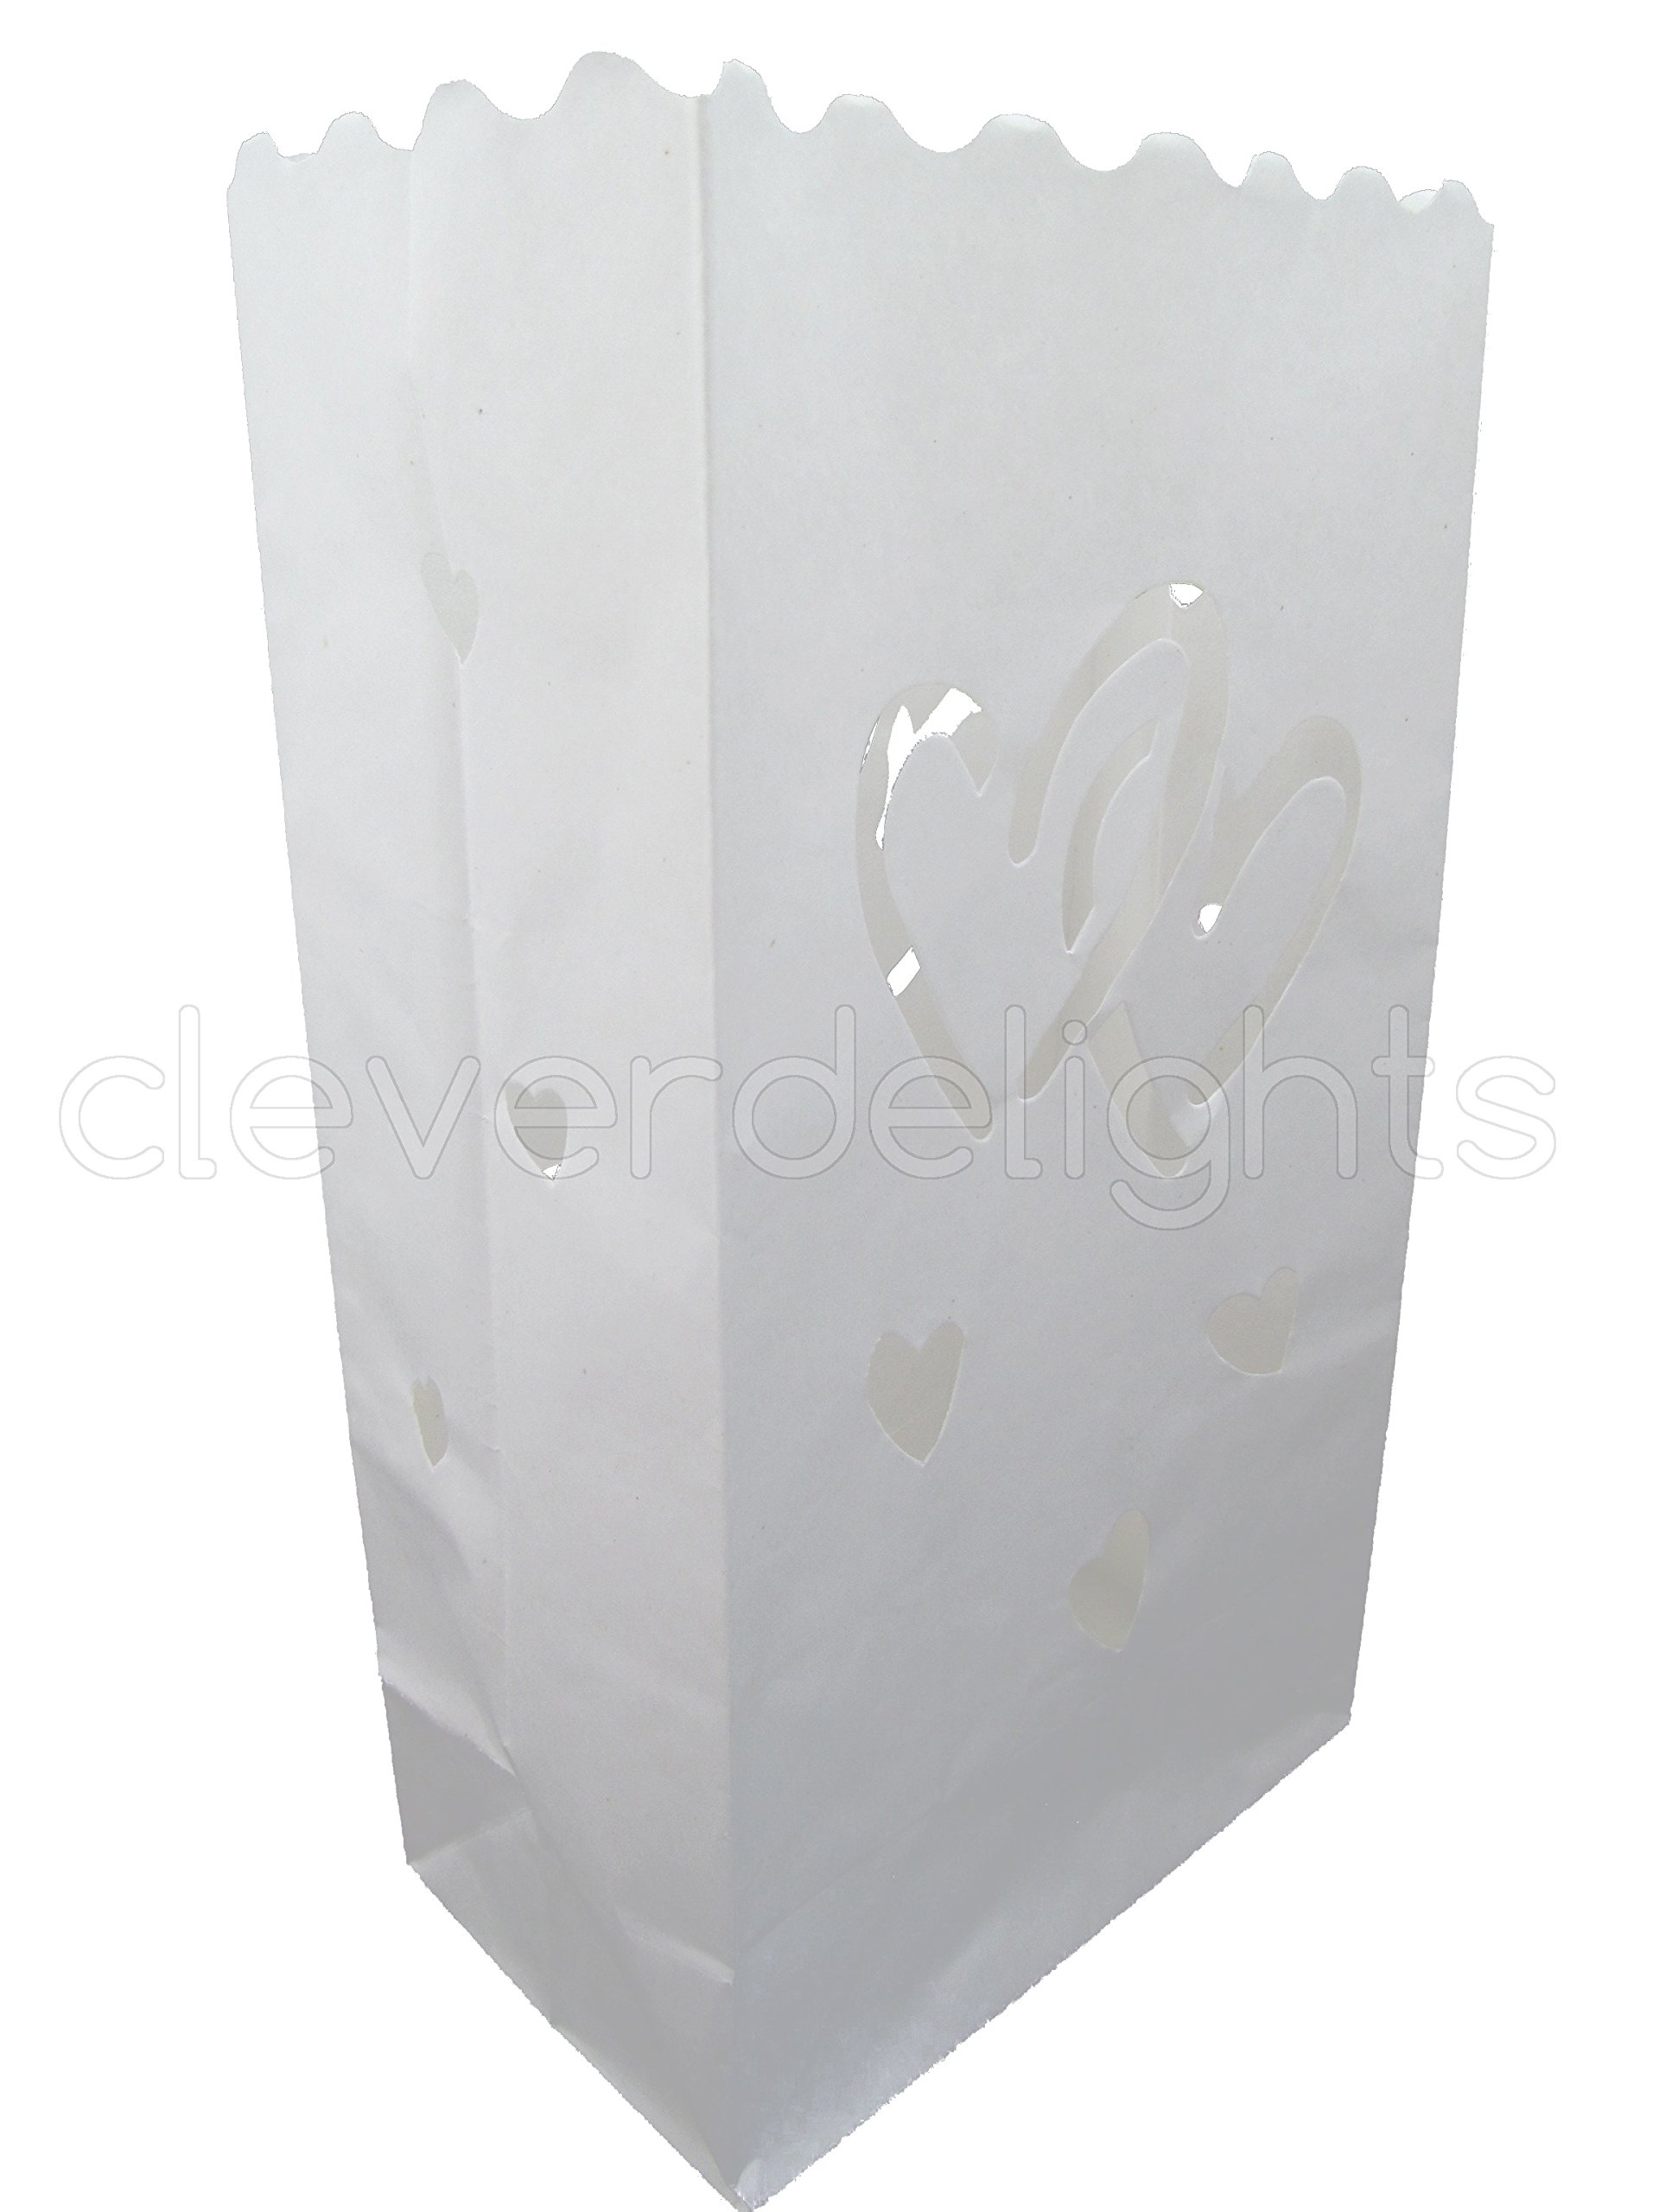 CleverDelights White Luminary Bags - 30 Count - Interlocking Hearts Design - Wedding, Reception, Party and Event Decor - Flame Resistant Paper - Luminaria by CleverDelights